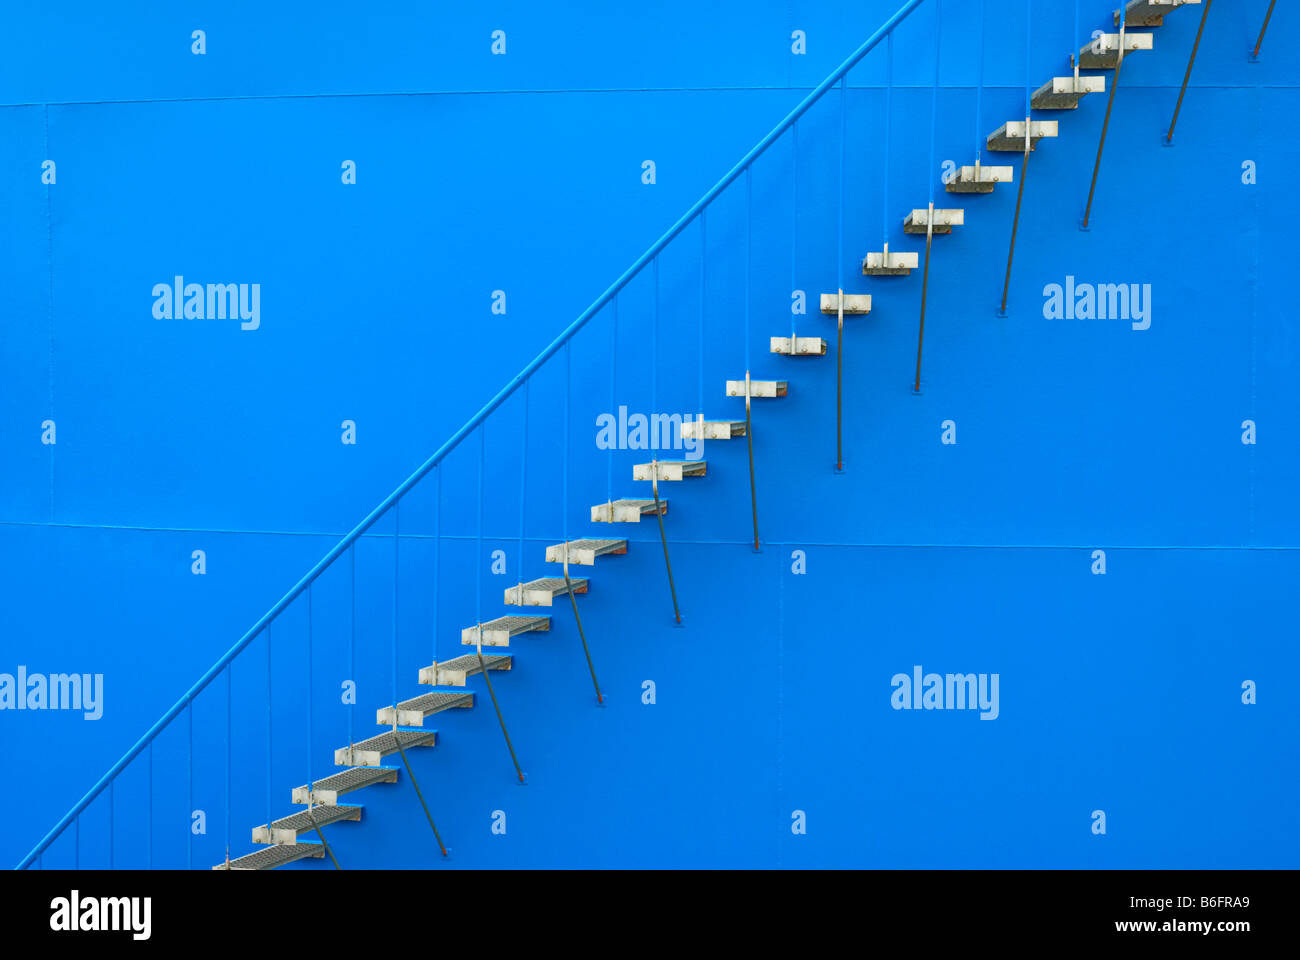 Steel staircase on the outer wall of an oil tank - Stock Image